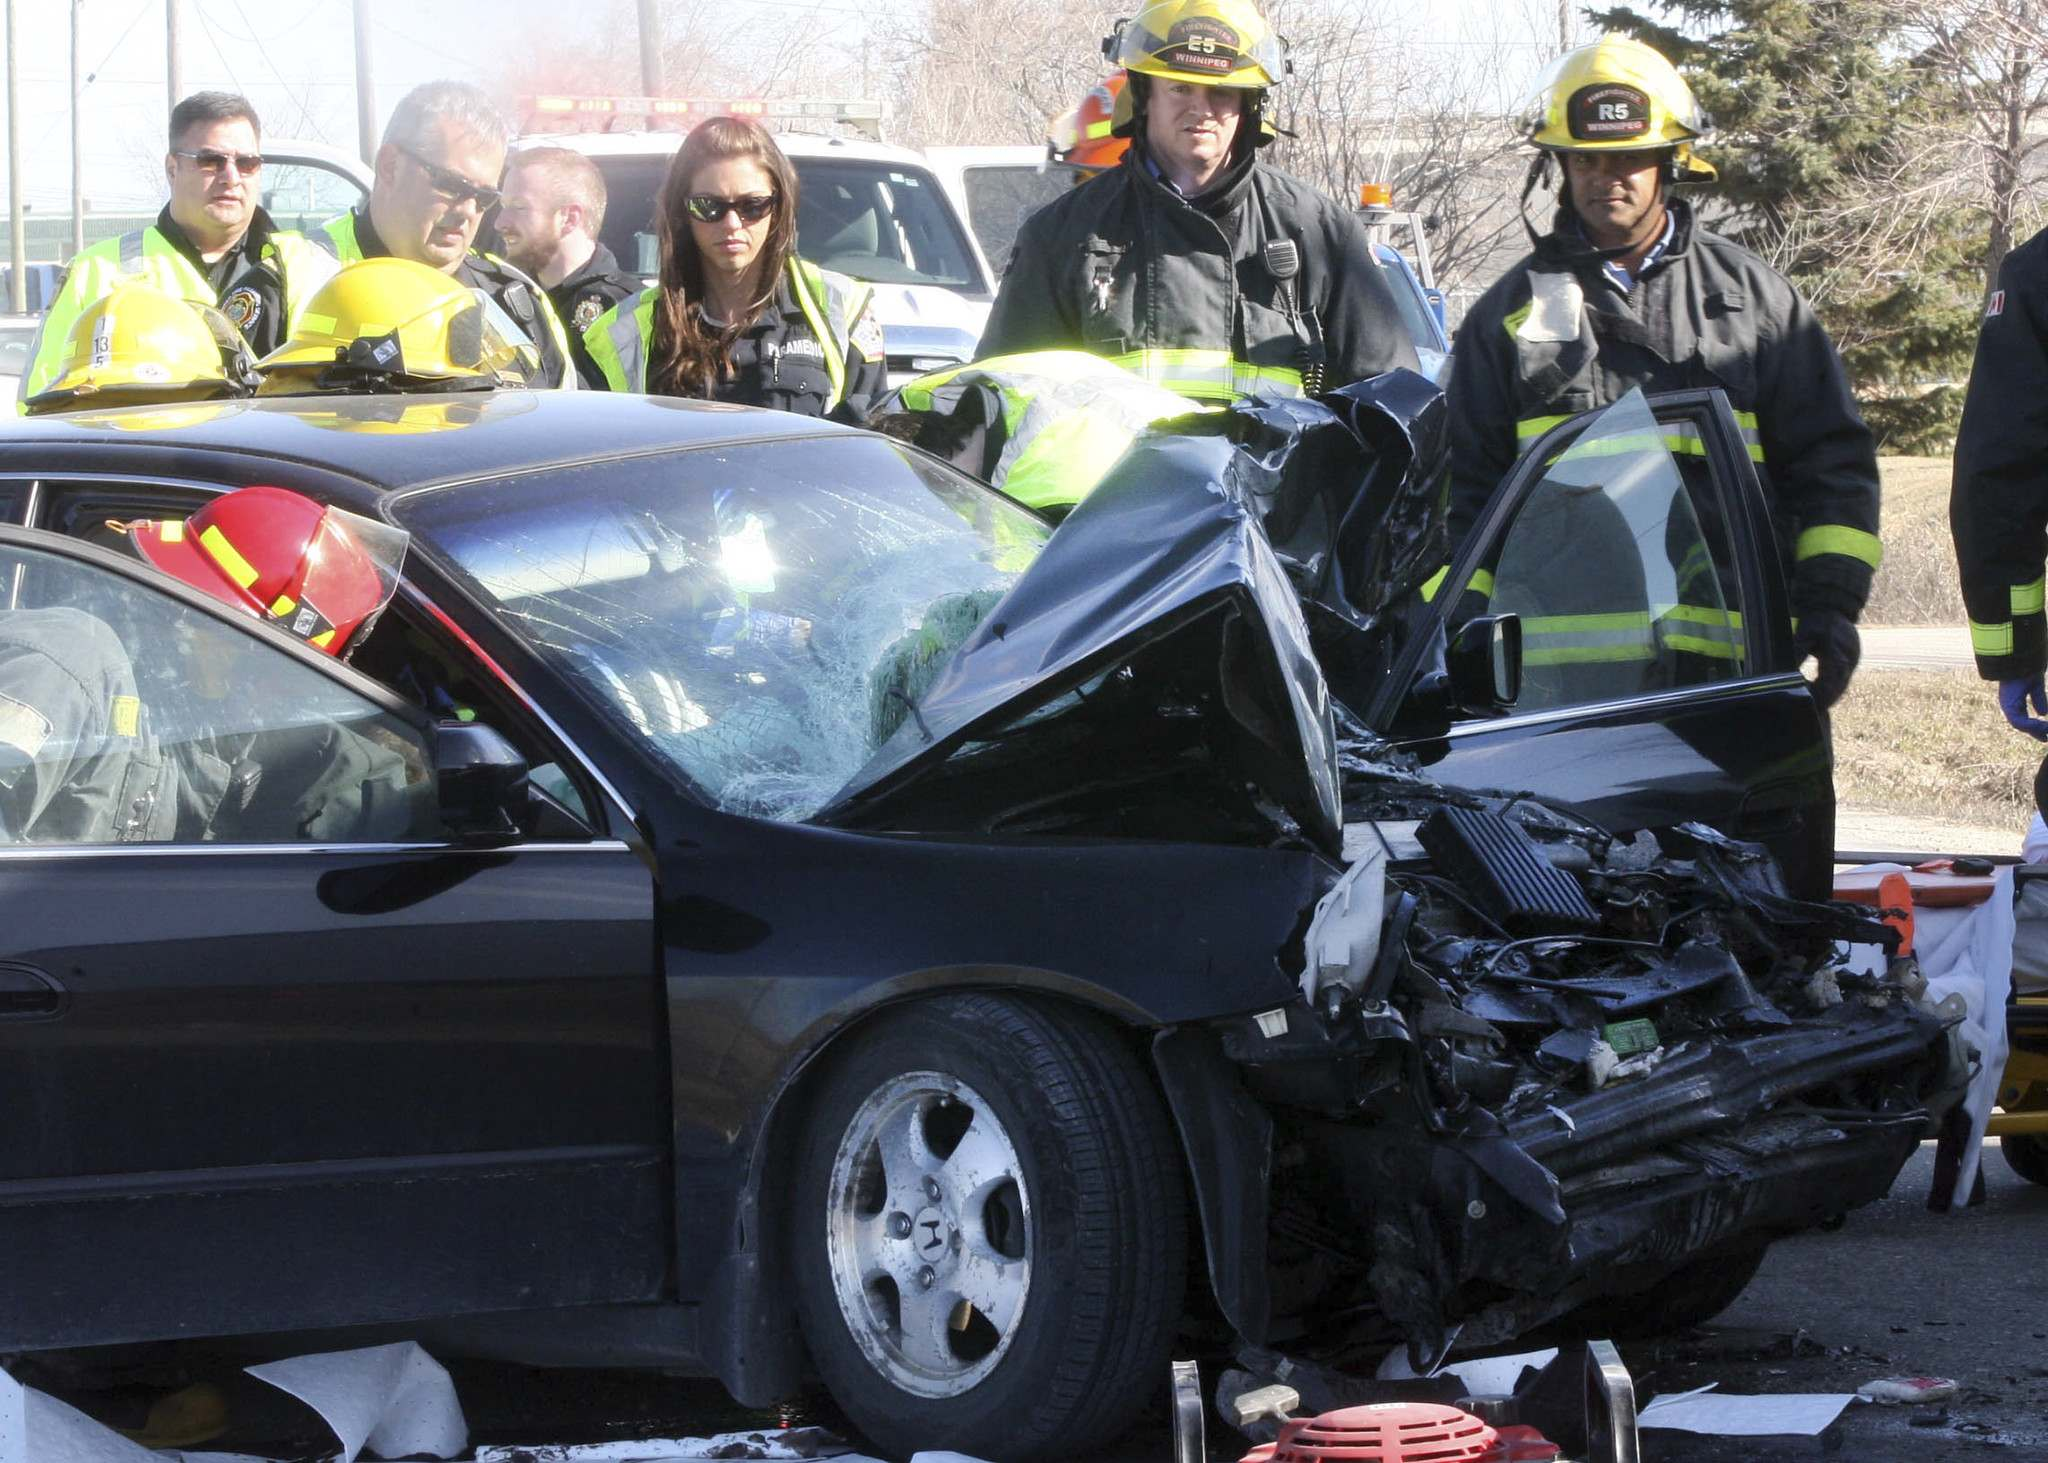 JOE BRYKSA / WINNIPEG FREE PRESS FILES</p><p>Statistics released by MPI on Wednesday indicate that 2016 was the deadliest year on Manitoba roads since 2006.</p>